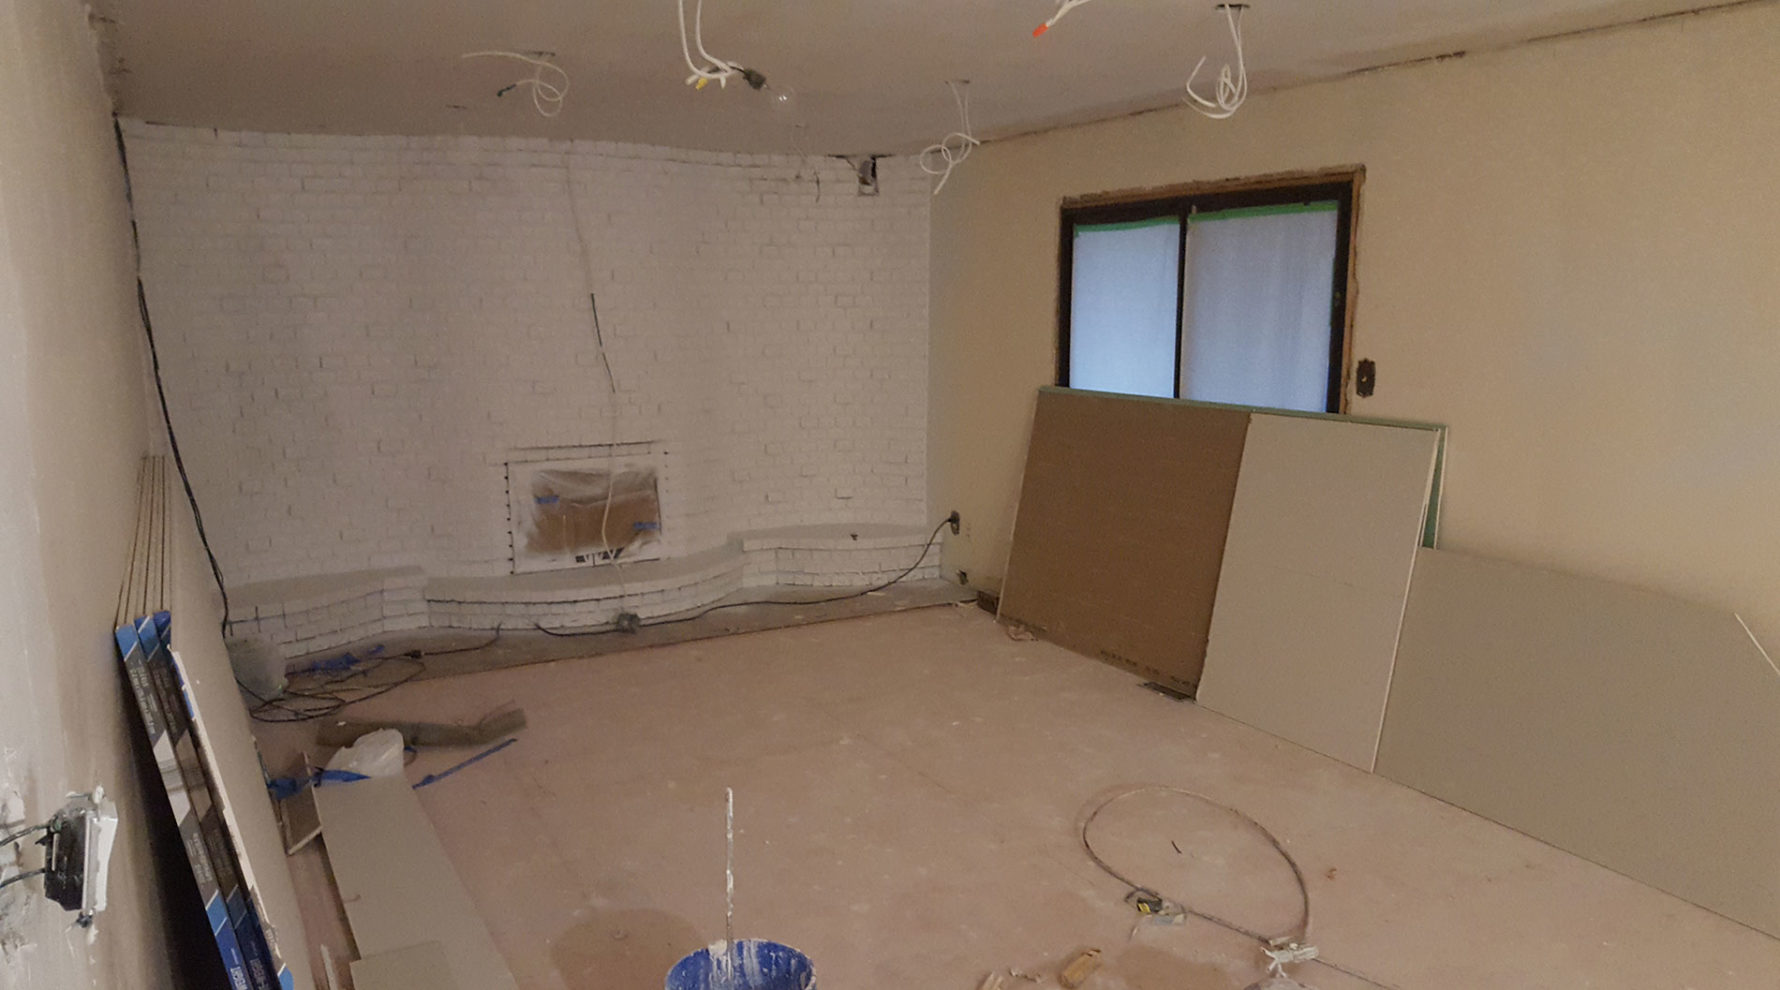 Is removing popcorn ceilings affordable?